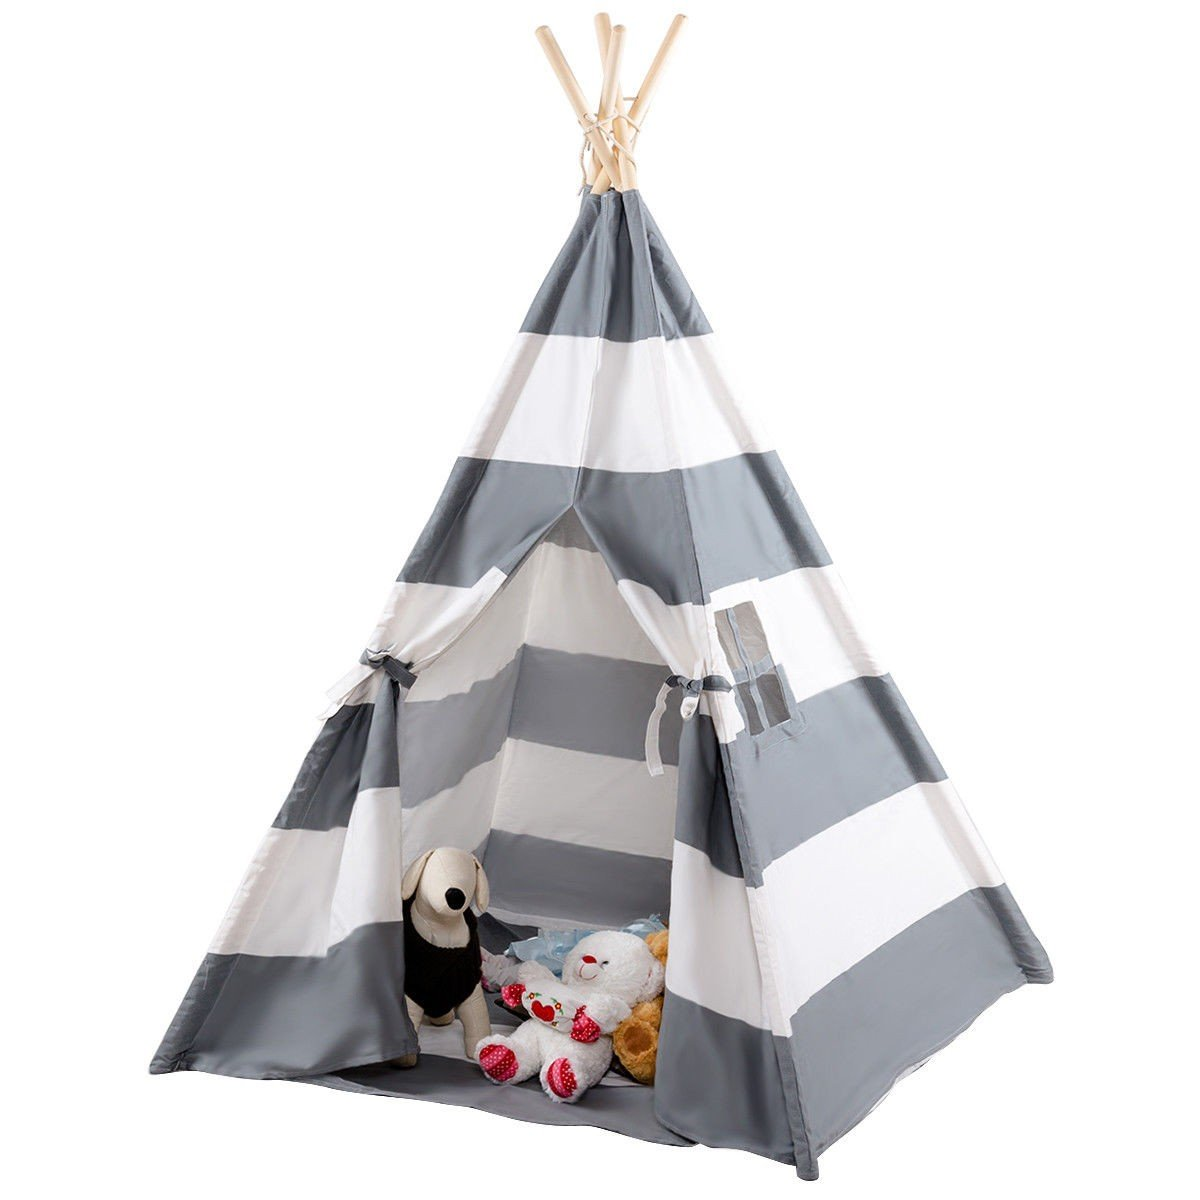 COSTWAY Kids Indian Play Tent Teepee Children Girl Boy Play House Sleeping Dome Bag Gray + FREE E - Book Only By eight24hours by COSTWAY (Image #6)